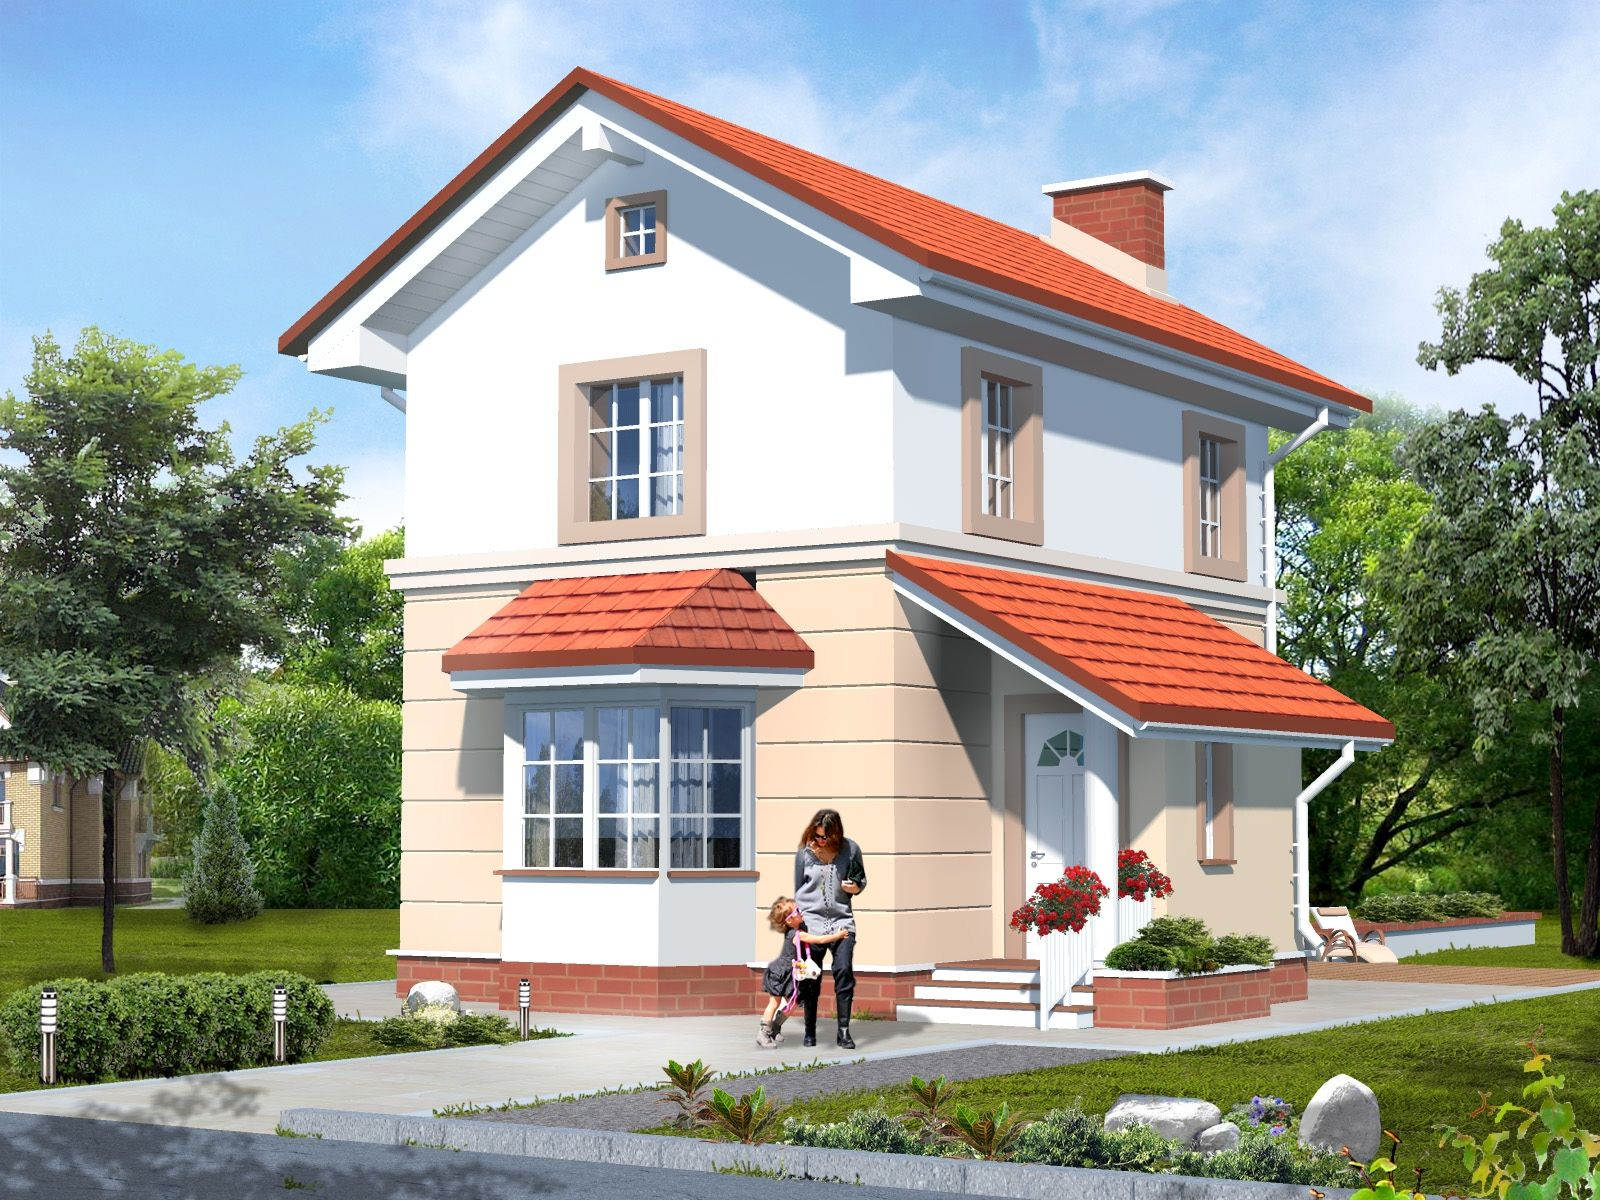 House plan by akvilonpro 39 39 boris 2 39 39 73 sq m two storey for House and terrace